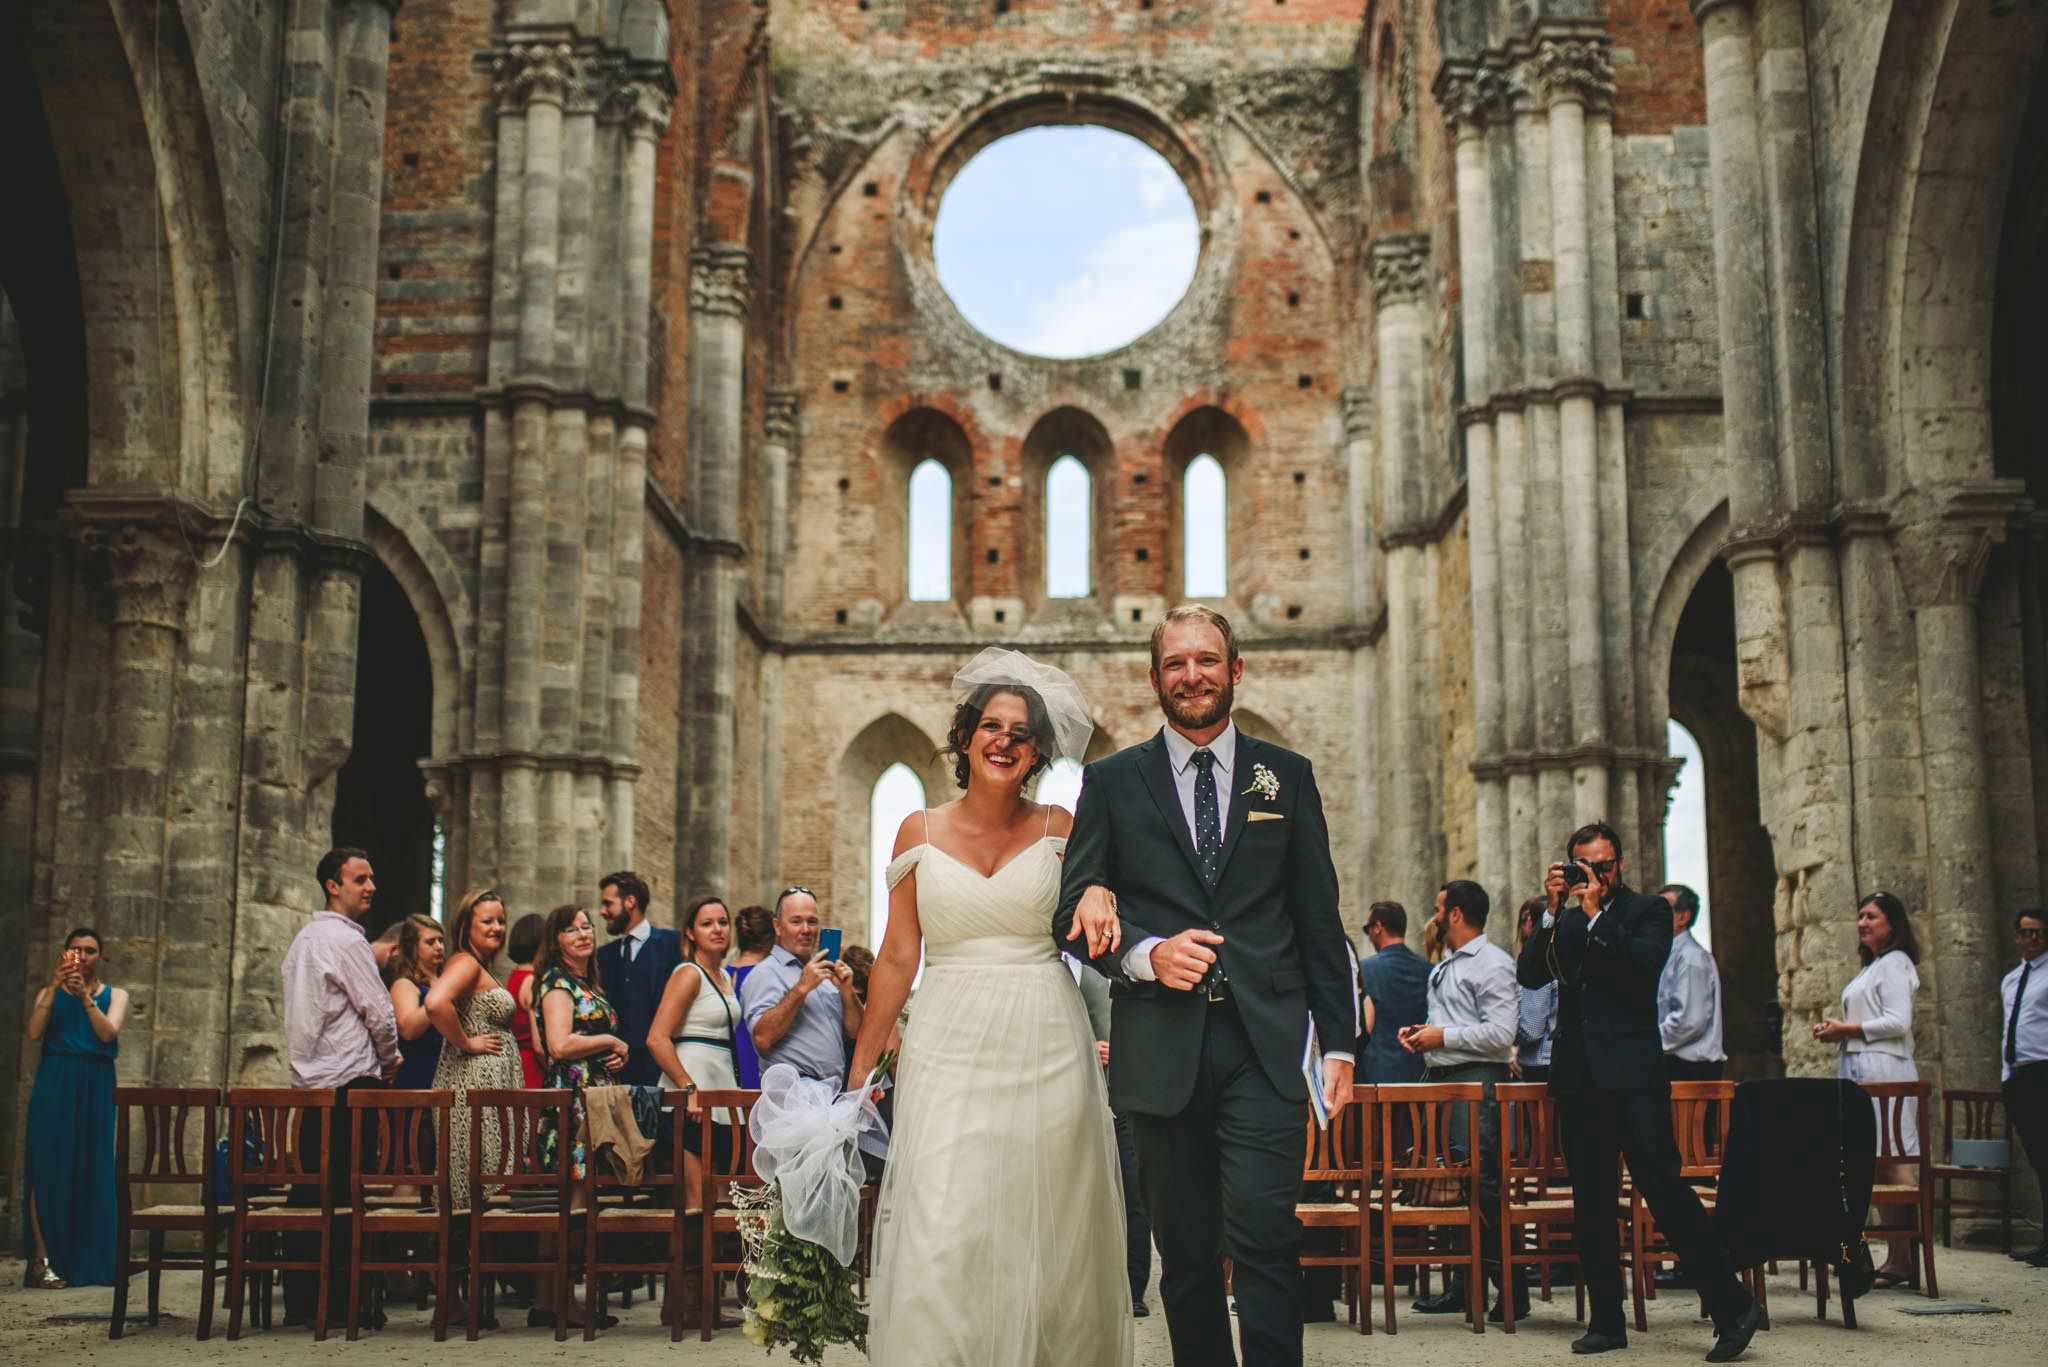 049-wedding-san-galgano-abbey-roberto-panciatici-photography